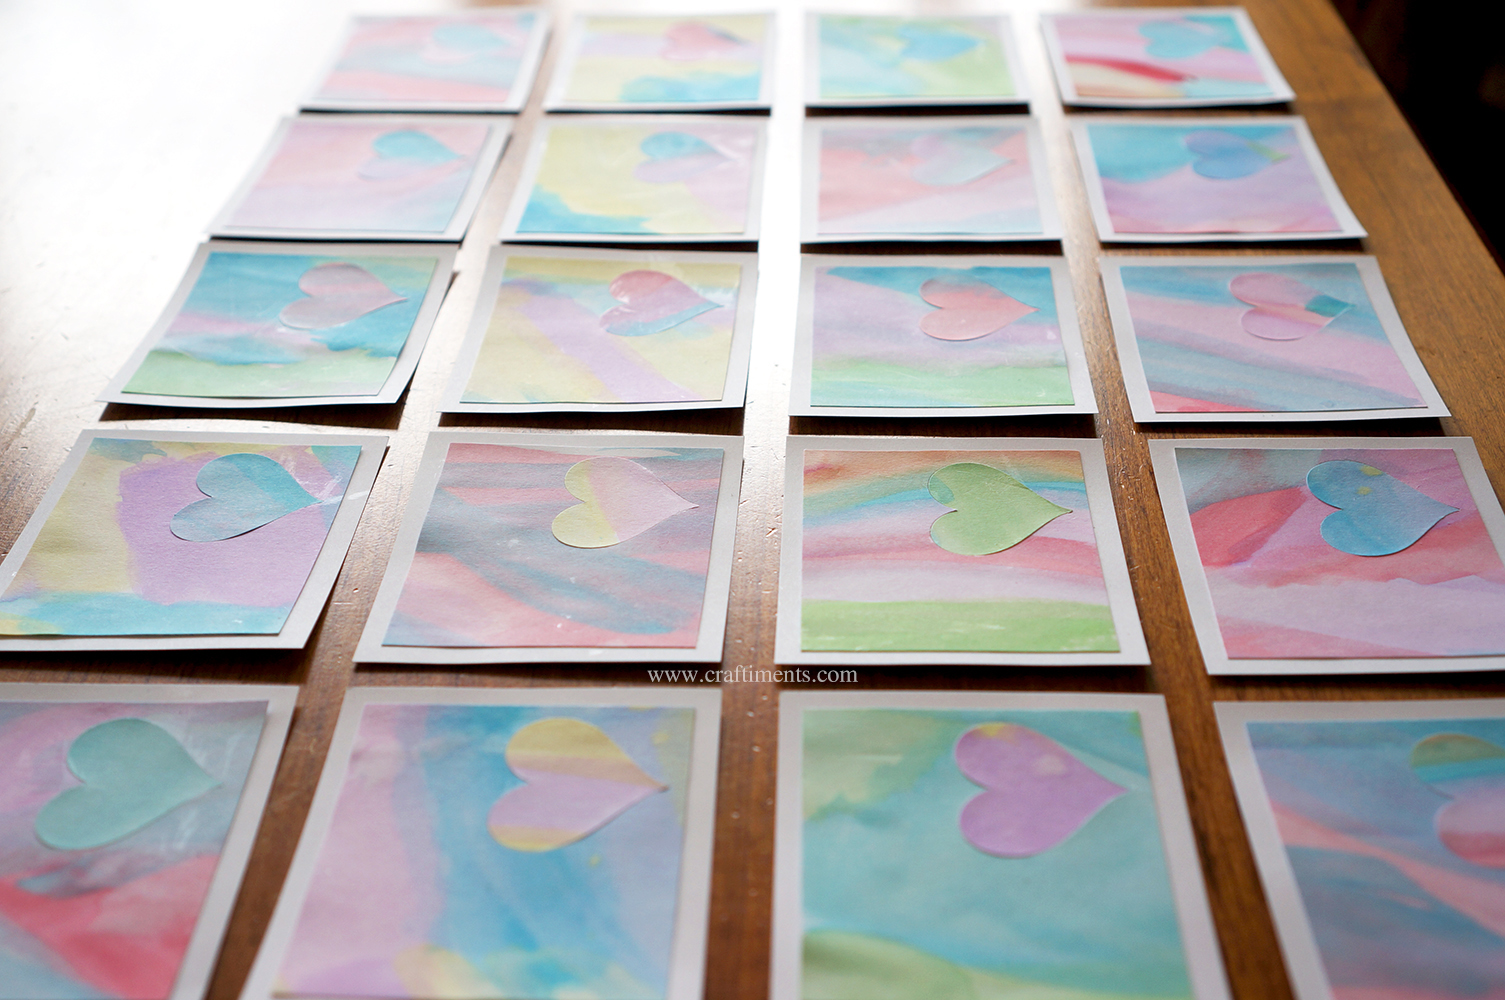 Kids' watercolor paintings made into Valentine's Day cards